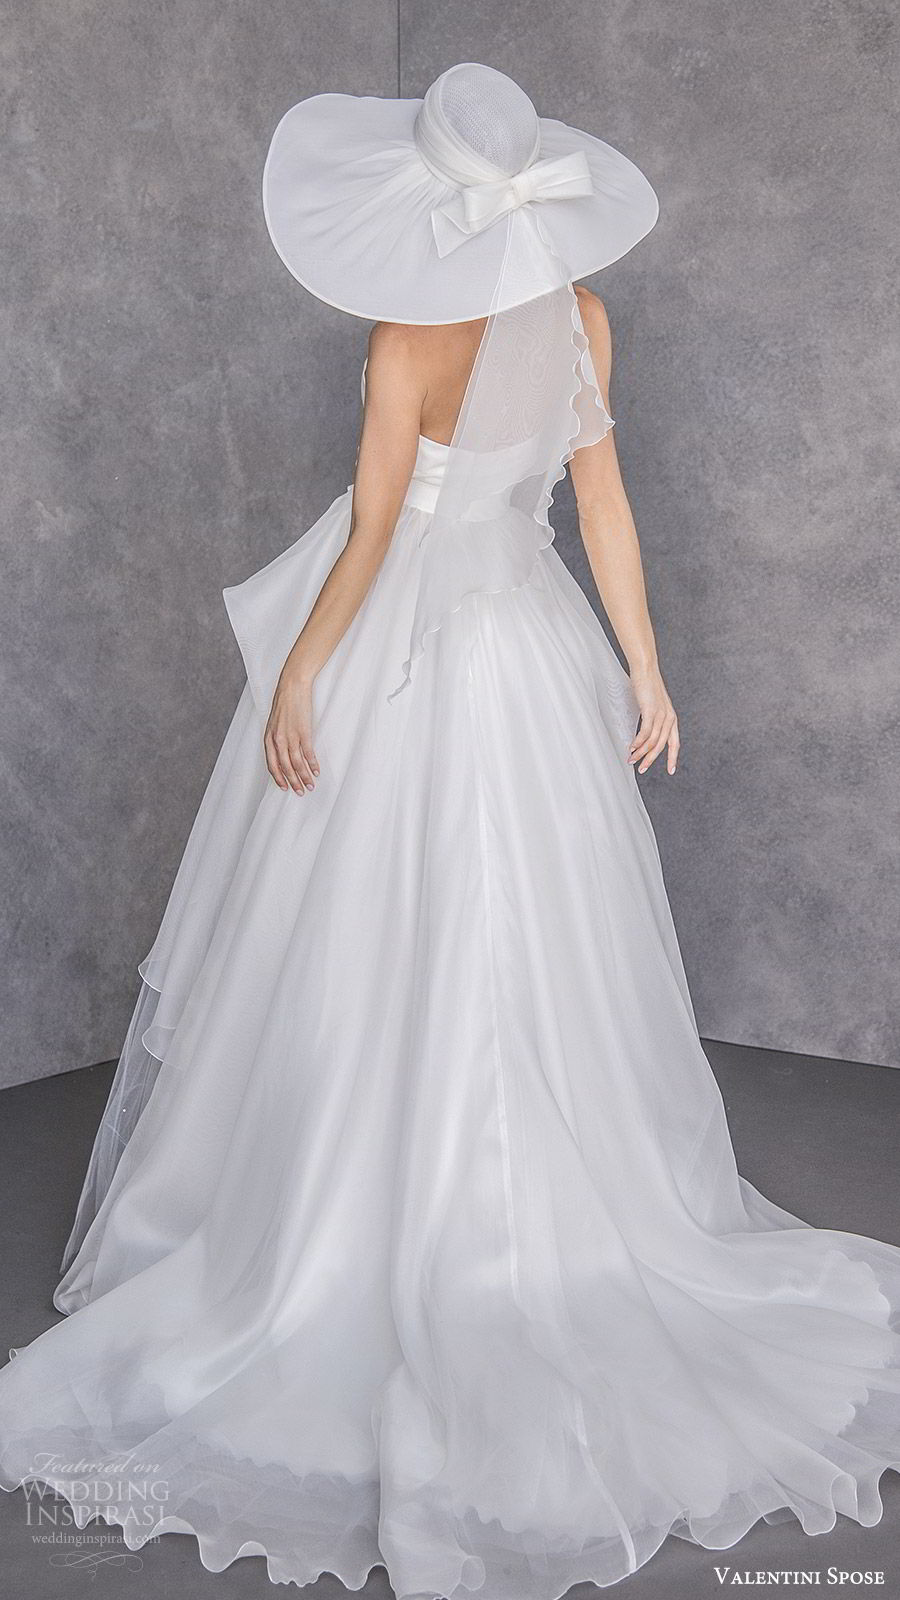 valentini spose spring 2020 bridal sleeveless halter neck deep v neckline a line ball gown wedding dress (23) tiered skirt elegant chic hat chapel train bv